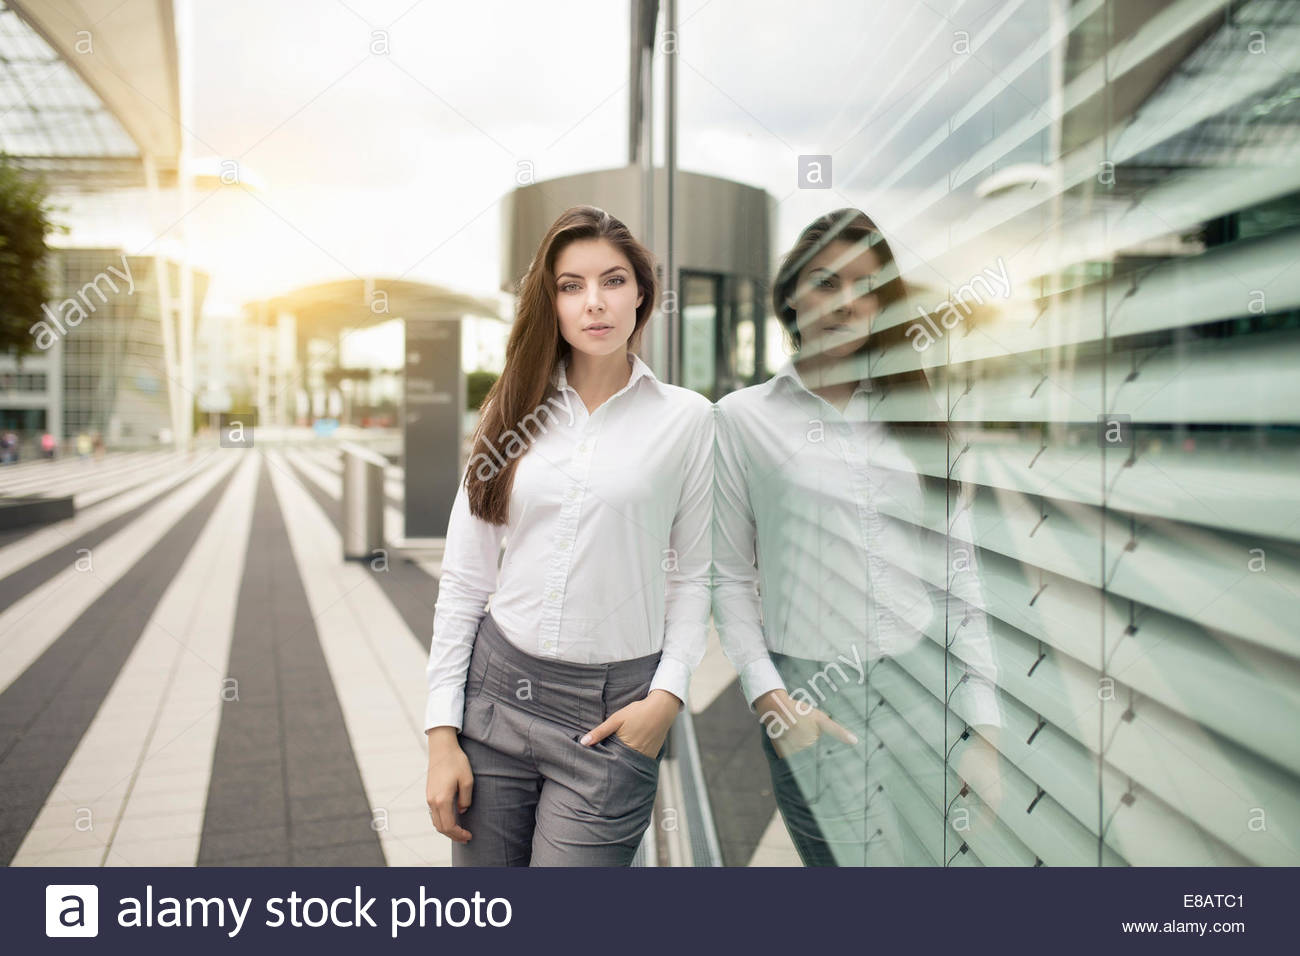 Businesswoman leaning against window, portrait Photo Stock